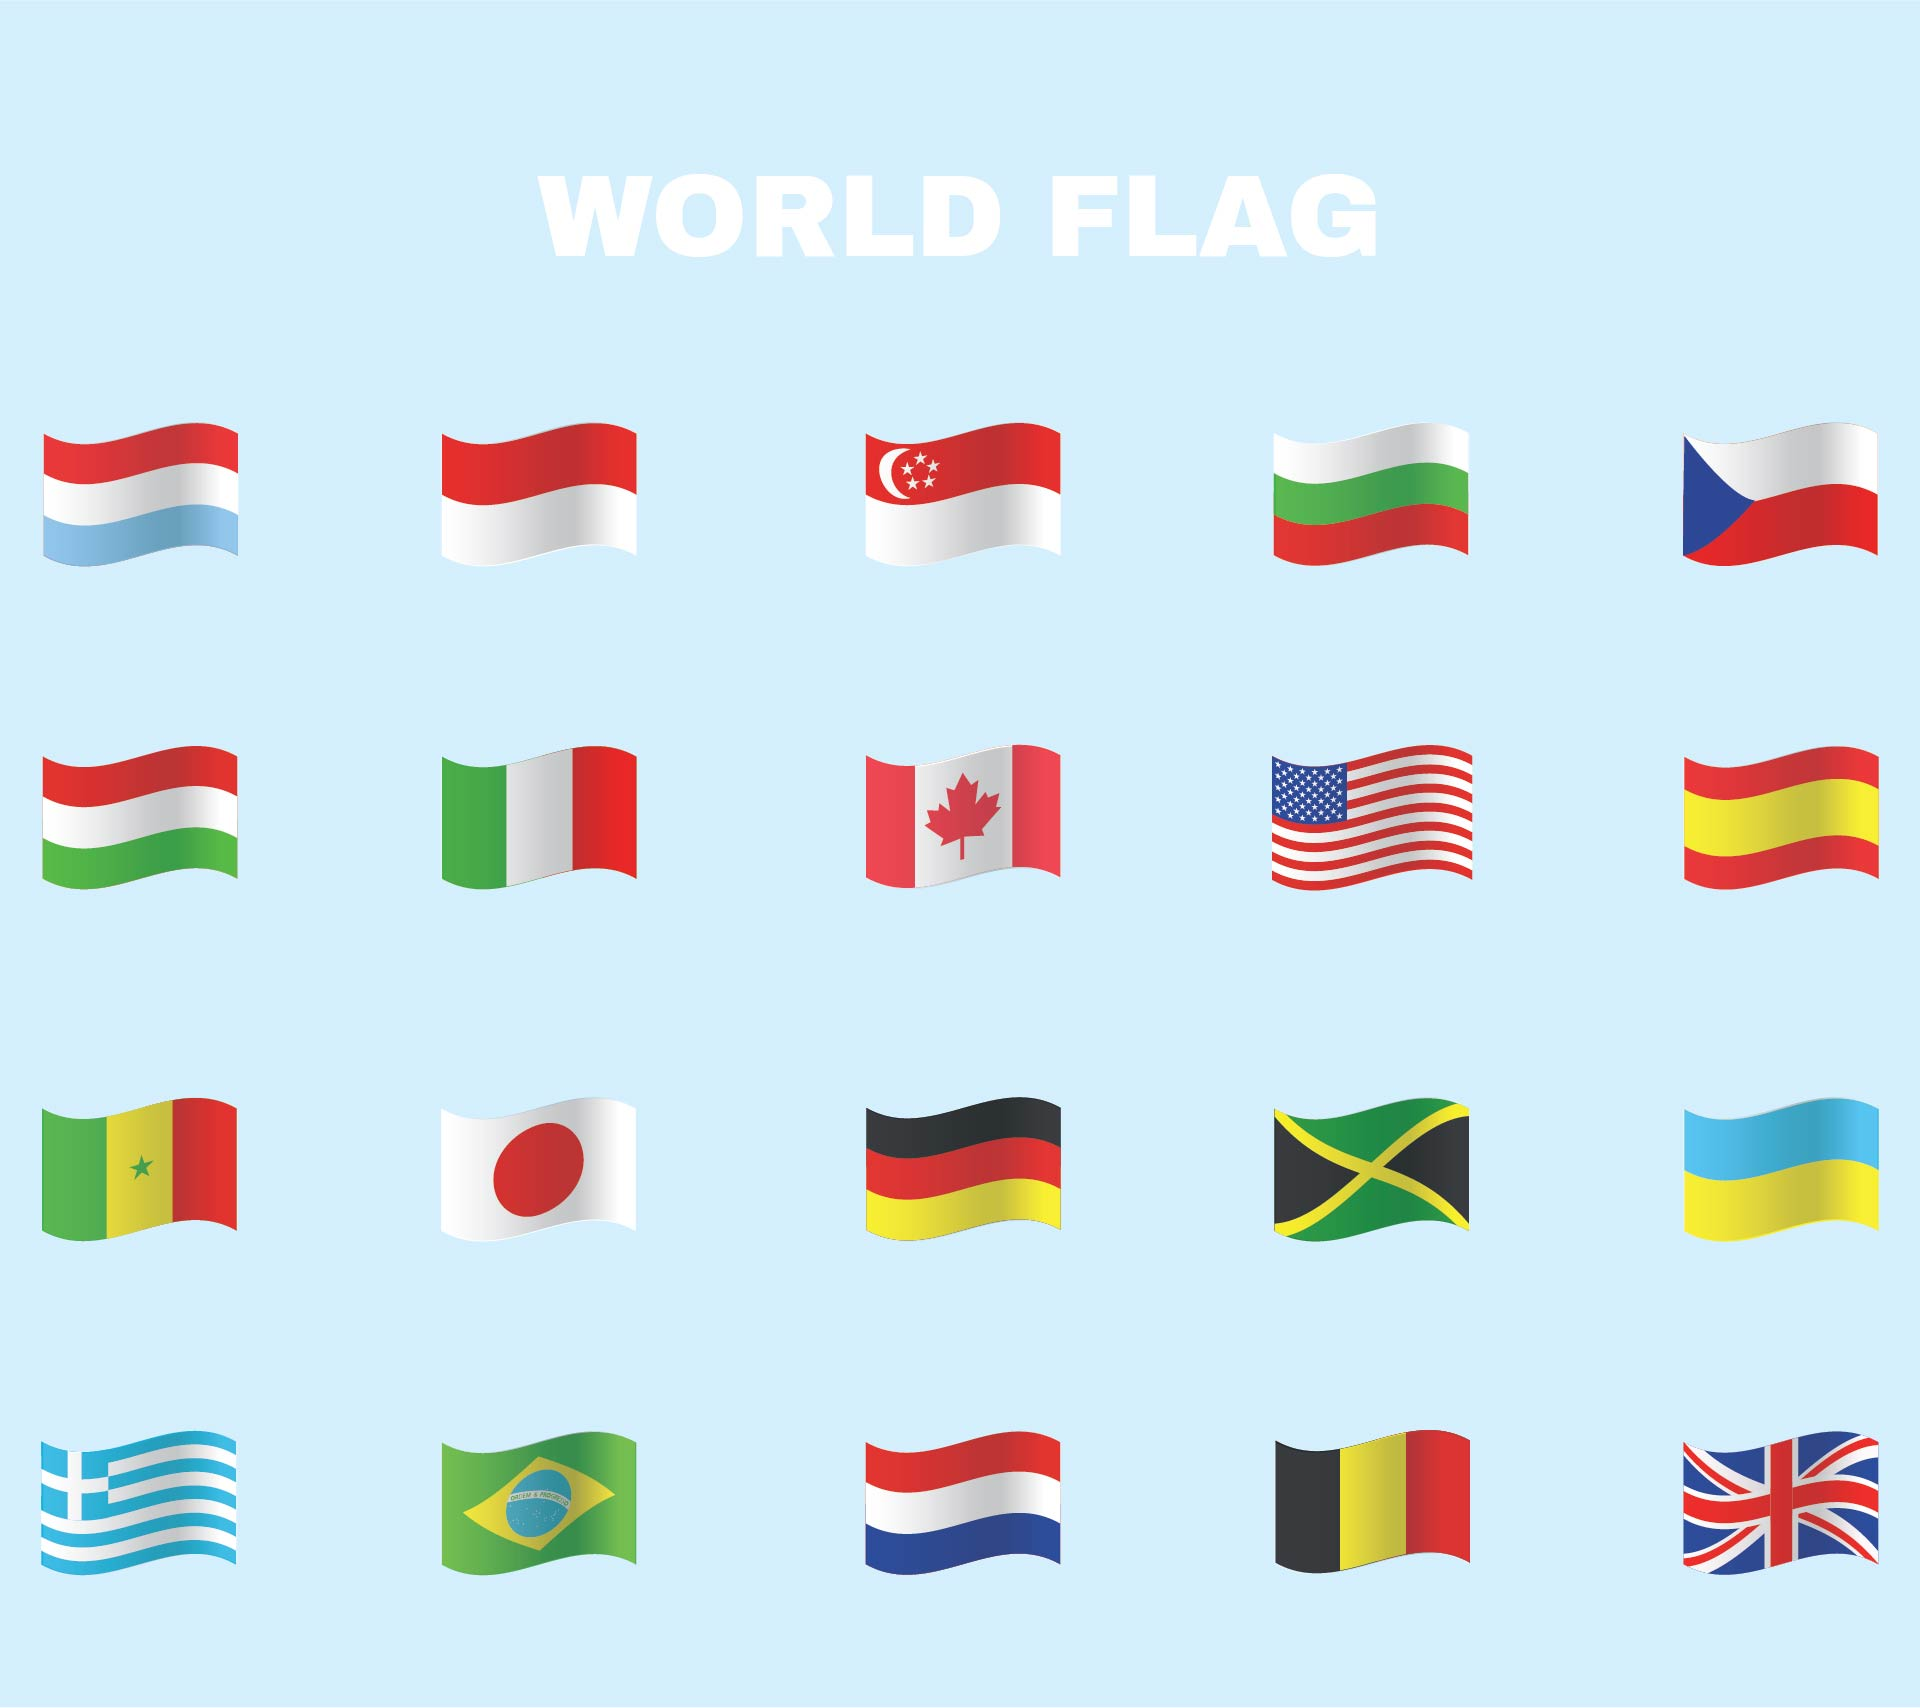 5 Images of Miniature Printable World Flags Downloadable